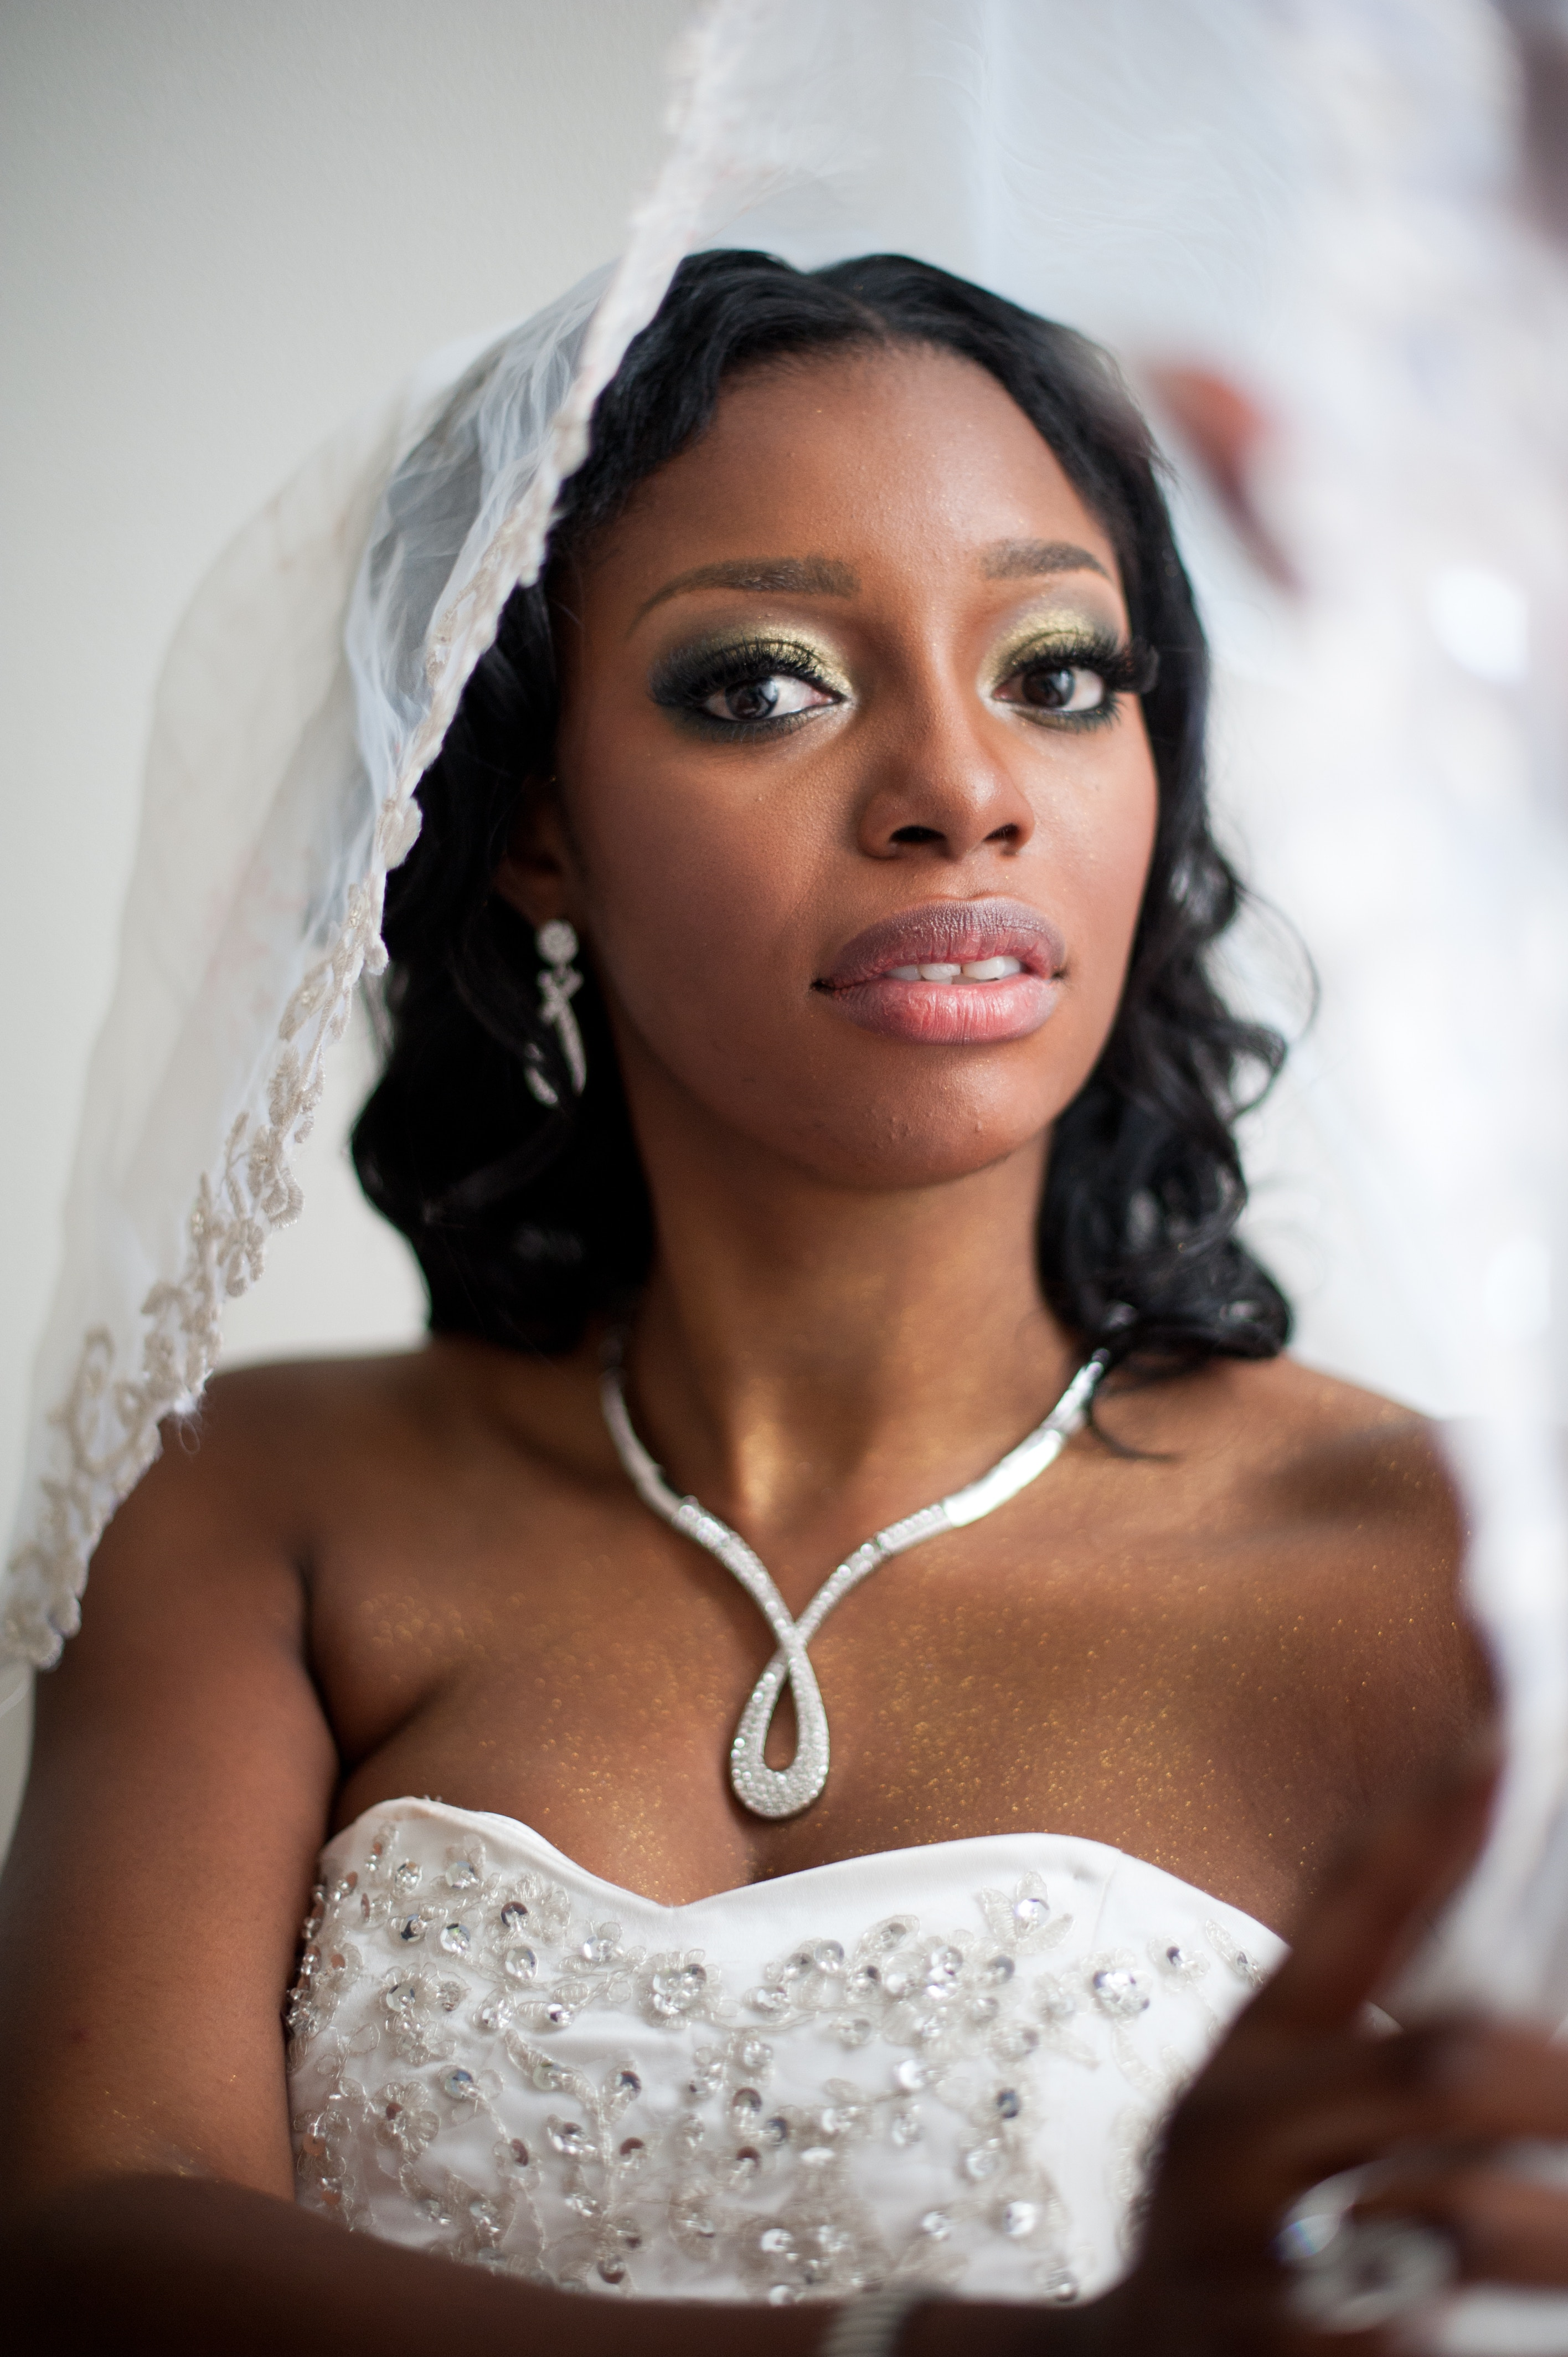 Black Bride Portrait